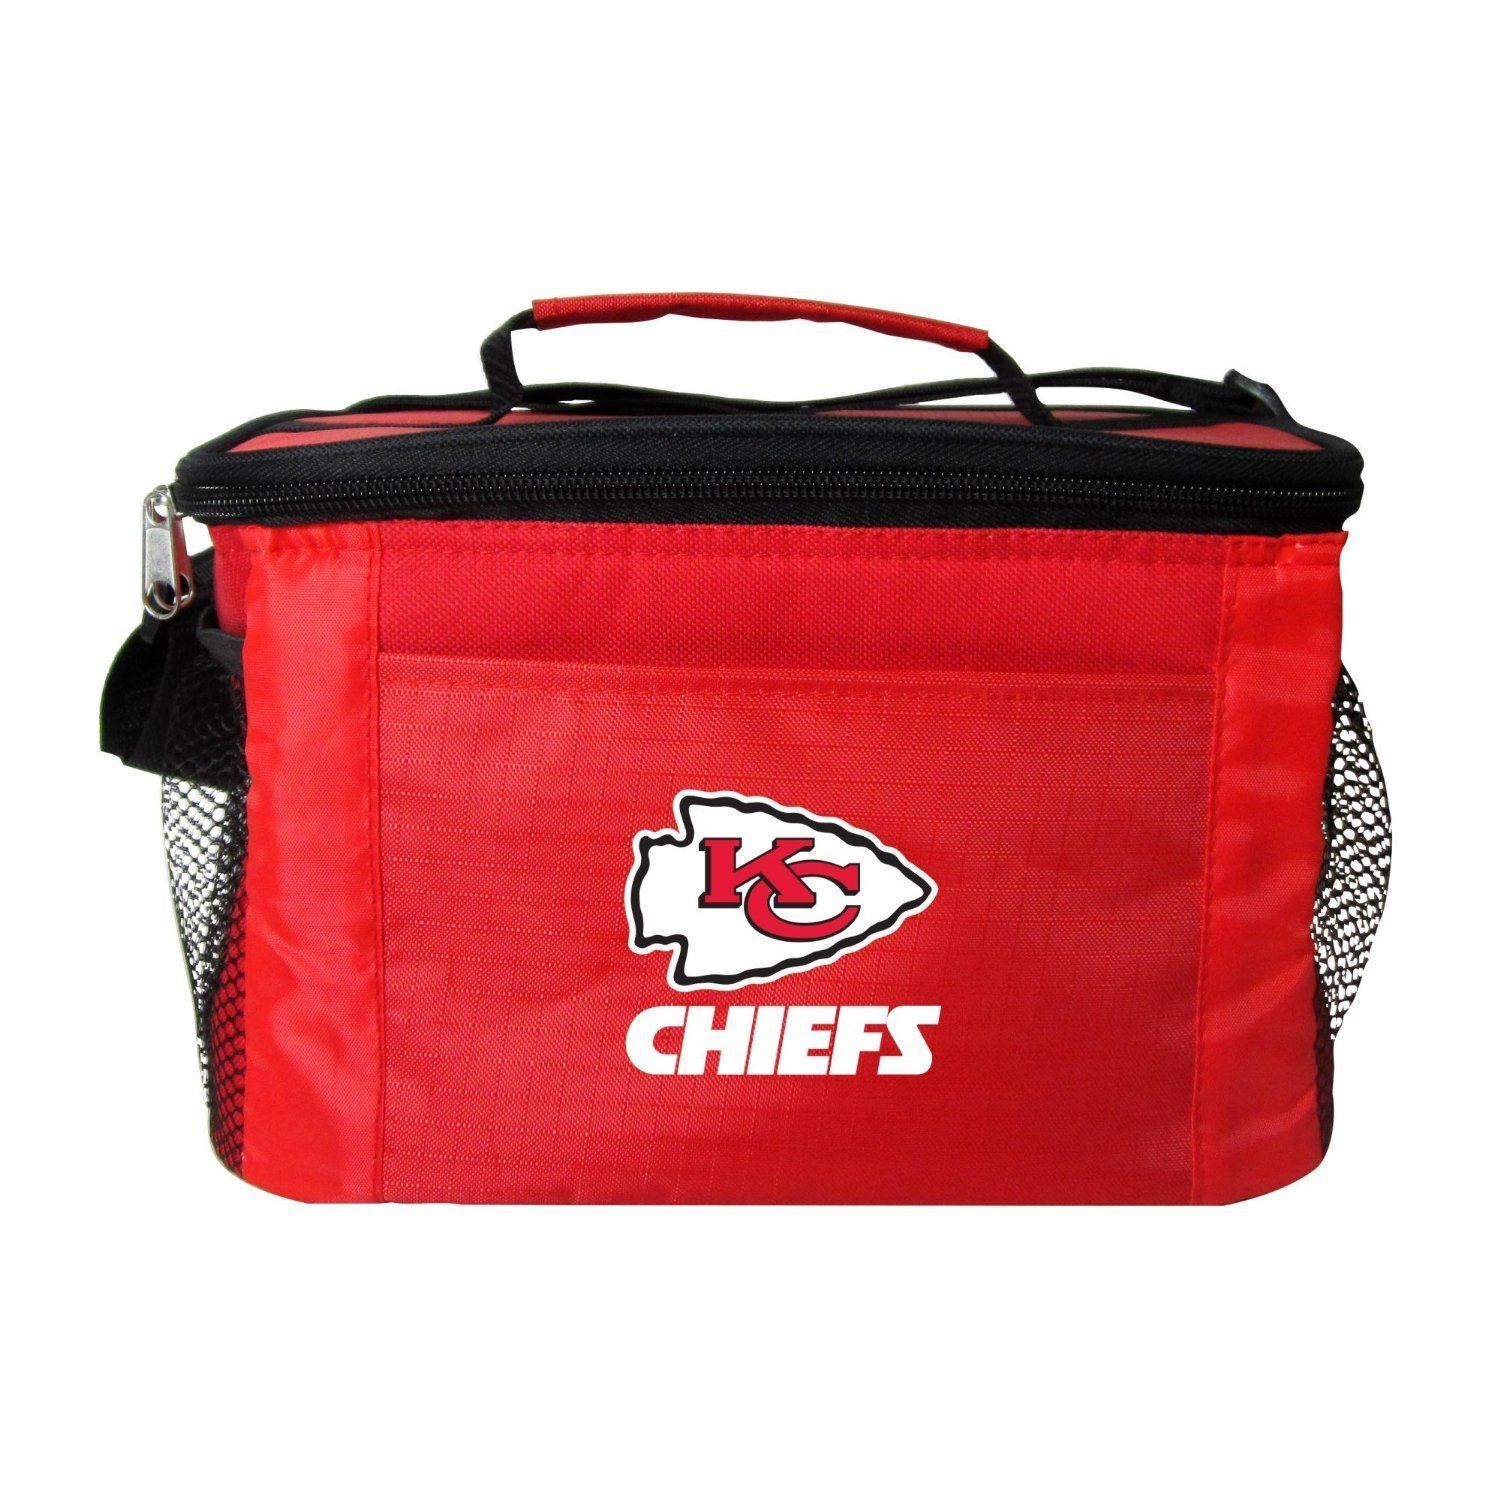 KANSAS CITY CHIEFS LUNCH TOTE 6 PK BEER SODA CAN TEAM KOOLER BAG NFL FOOTBALL